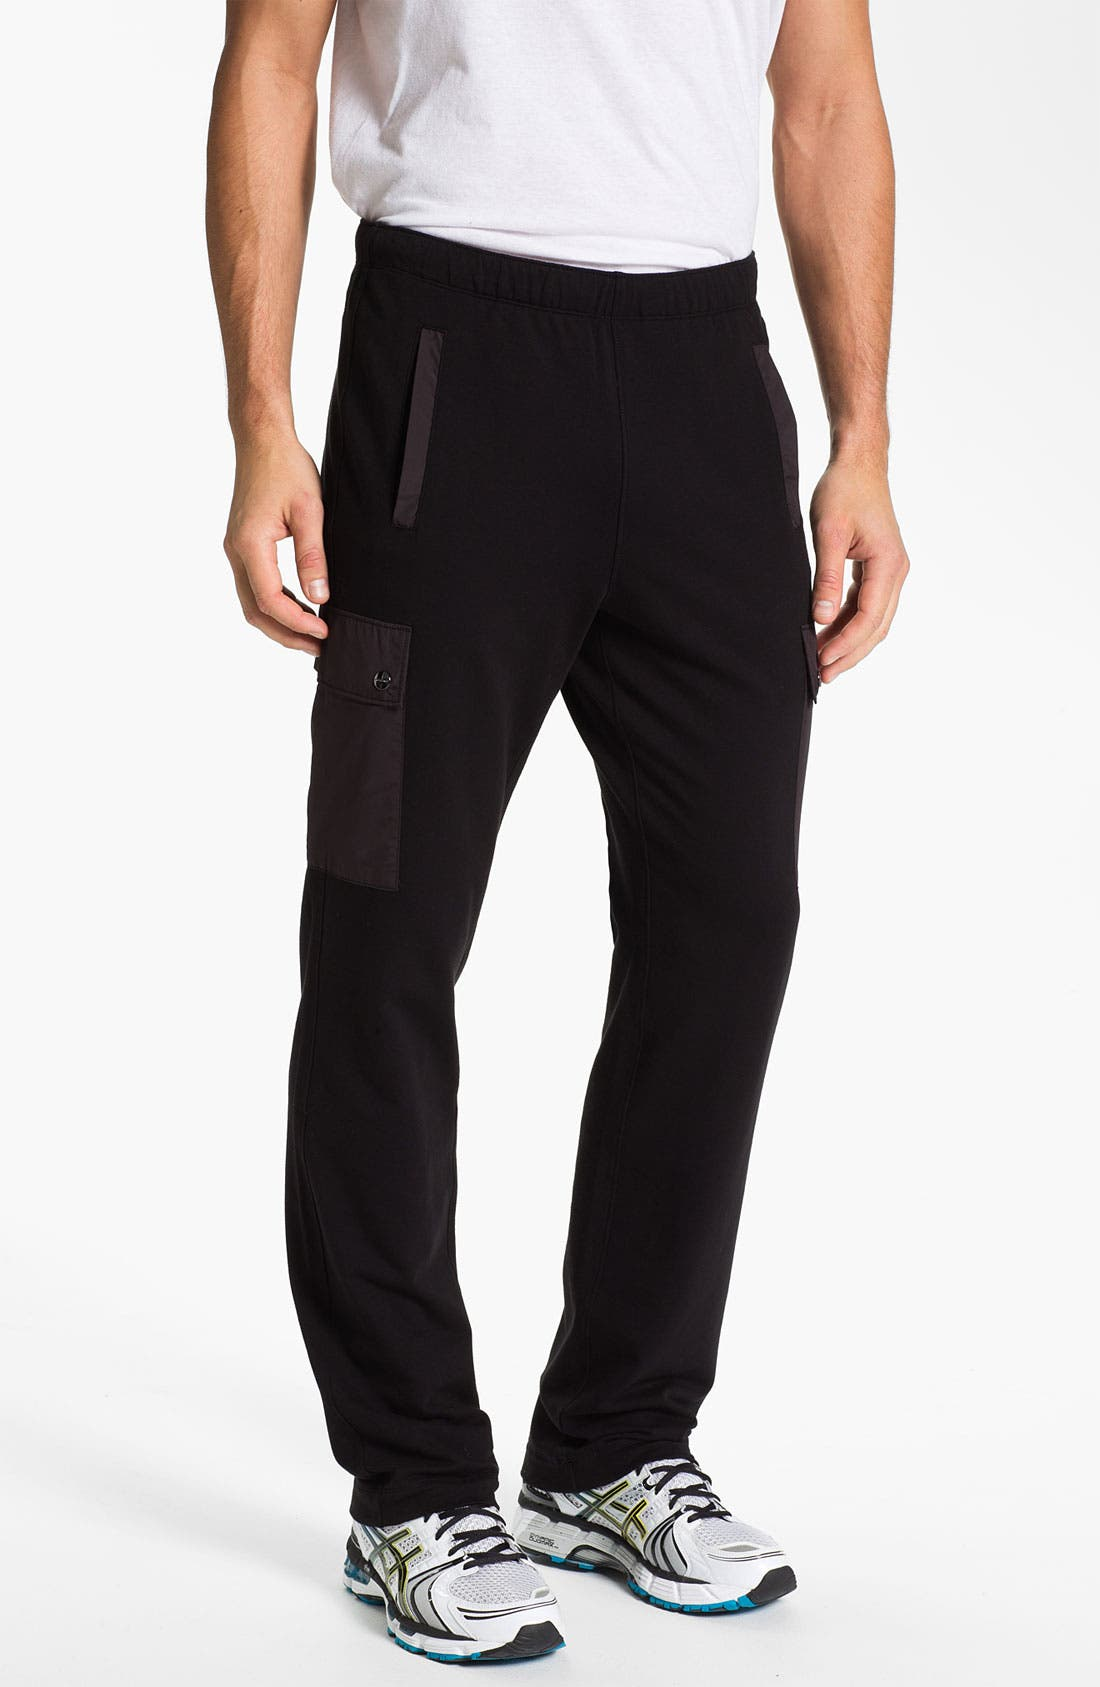 Main Image - Michael Kors Fleece Cargo Pants